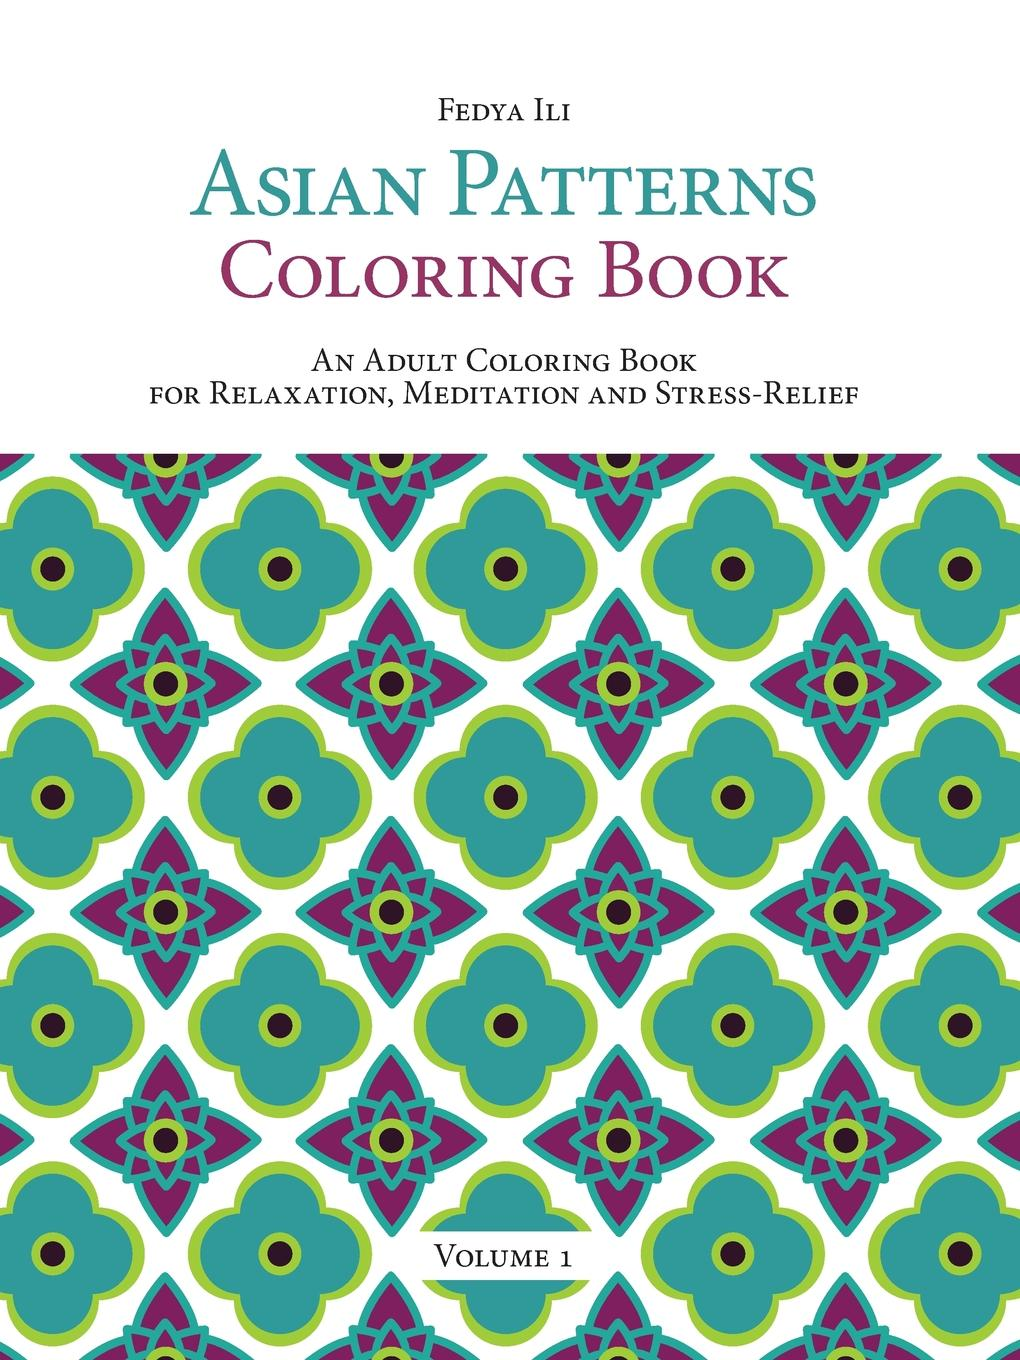 Fedya Ili Asian Patterns Coloring Book. An Adult Coloring Book for Relaxation, Meditation and Stress-Relief (Volume 1) 1 pc secret garden adult coloring book 96 pages 18 5 18 5cm designs stress relief coloring book garden designs mandalas